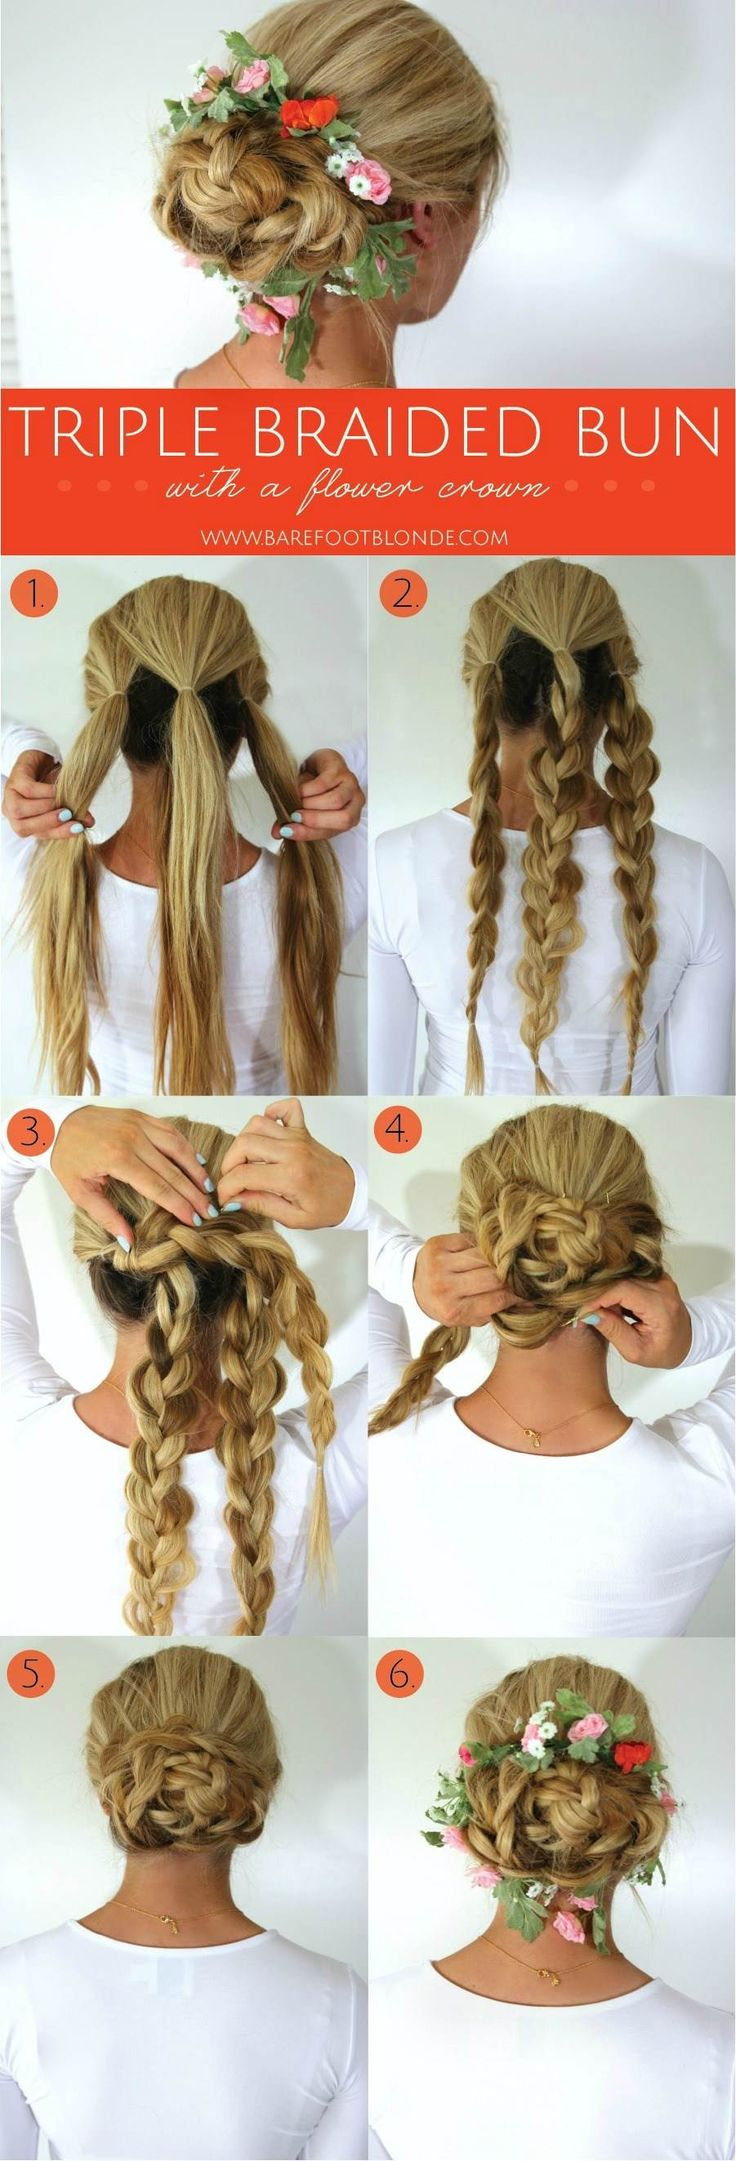 Pretty braided hairstyle ~ perfect for a bridal updo or for the flower girl.